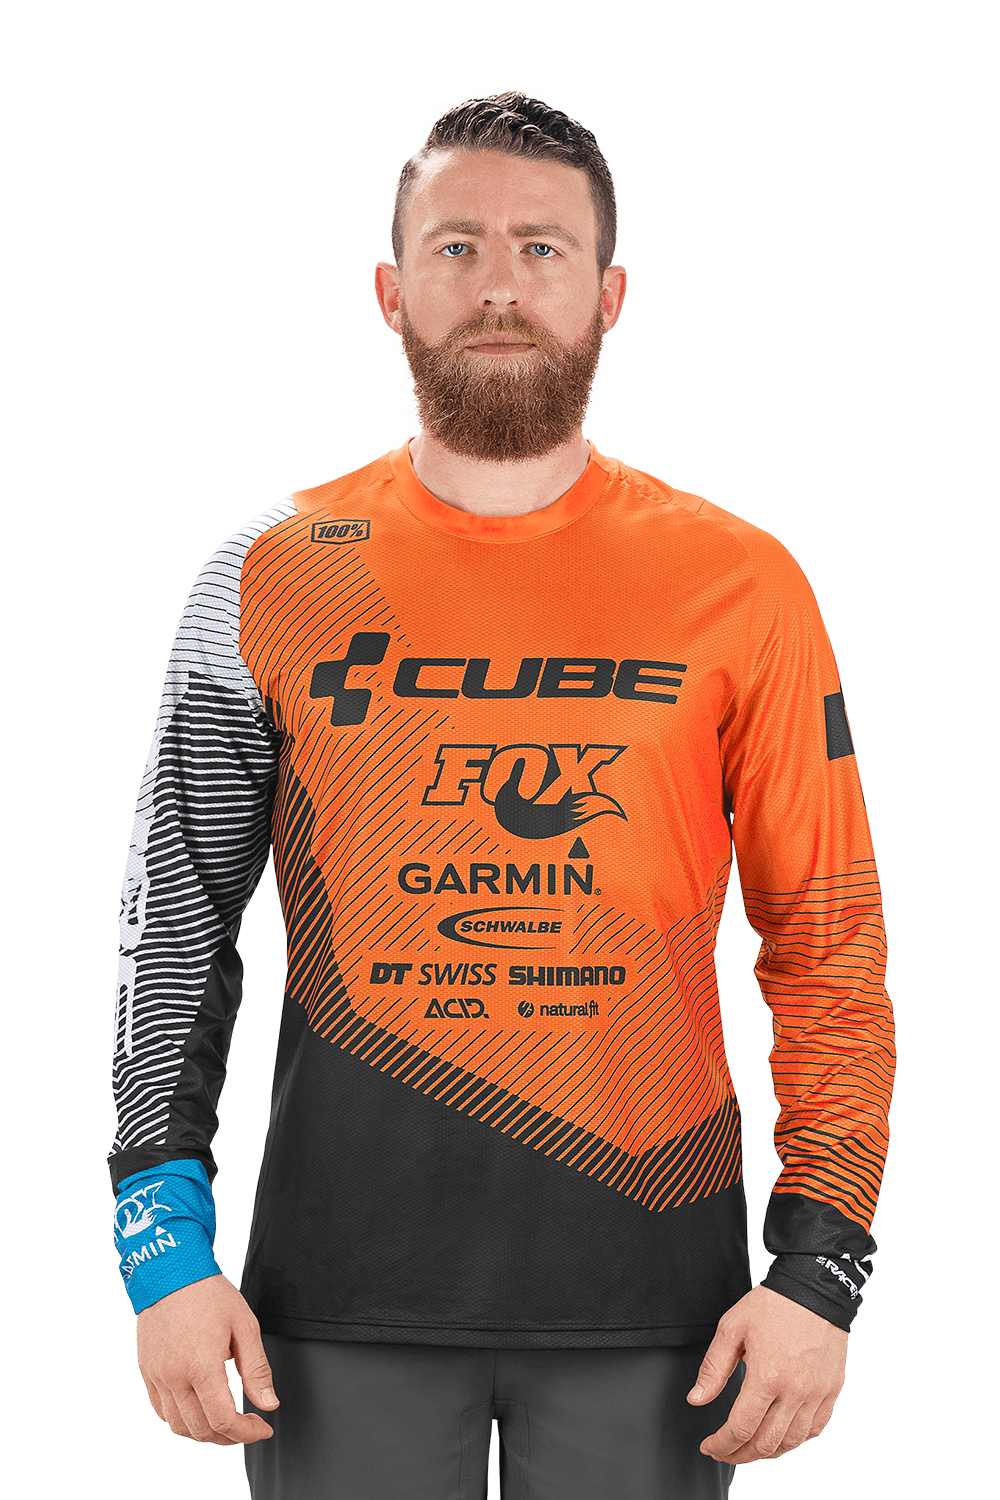 a39515d2c 2019 Cube Edge Round-Neck Mens Long Sleeve Jersey in Action Team £49.95